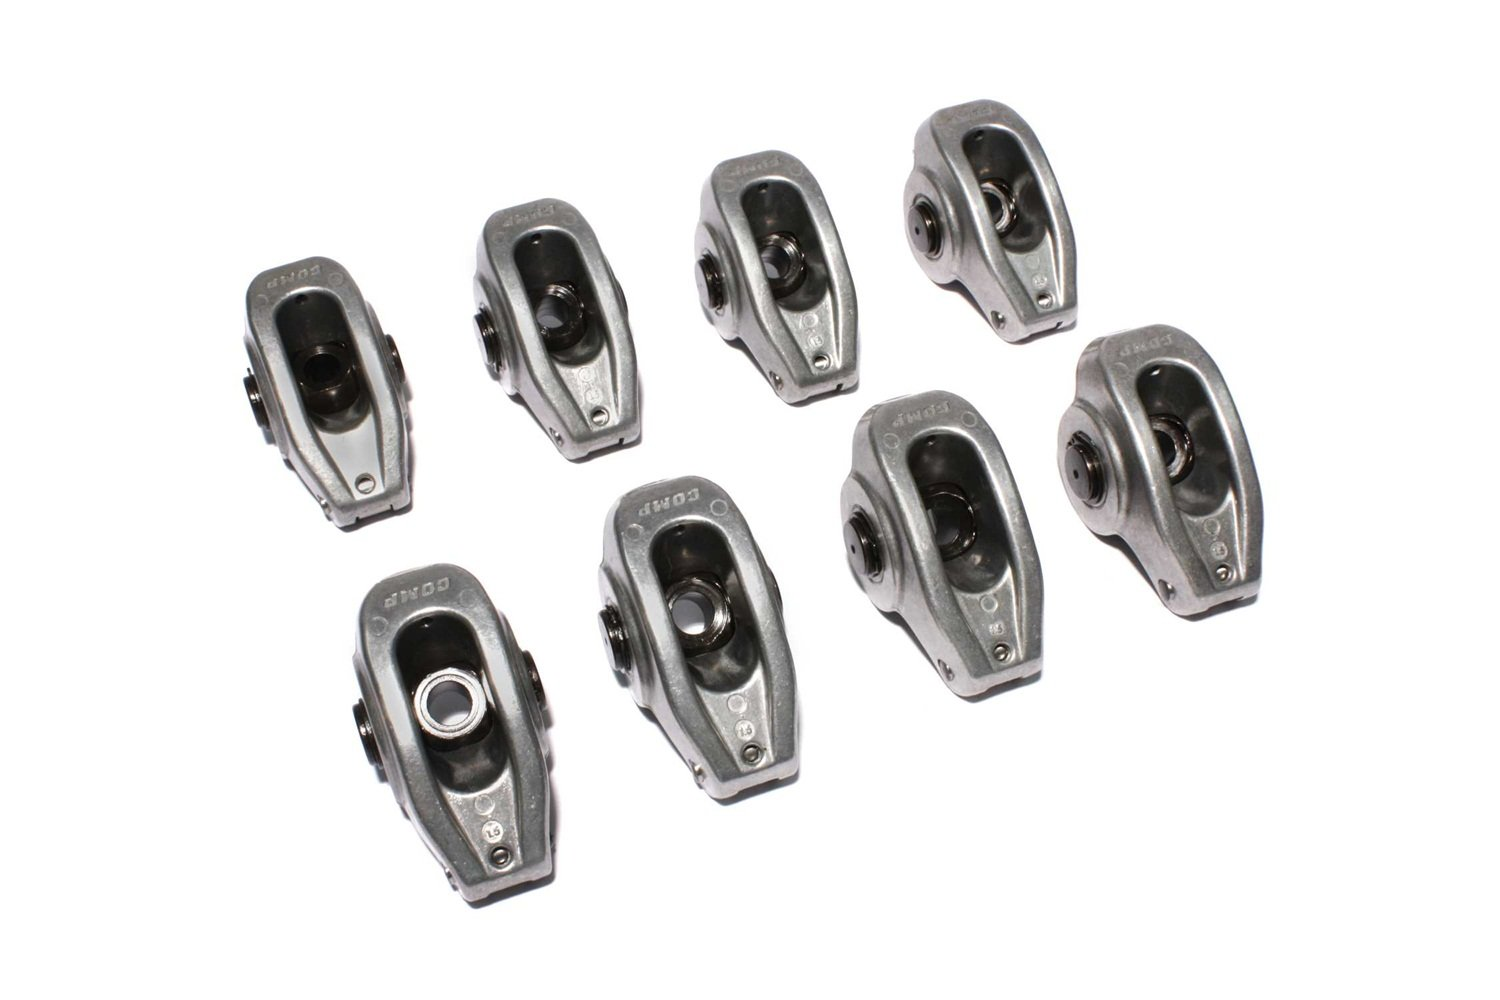 COMP Cams 17004-8 High Energy Die Cast Aluminum Roller Rocker Arm with 1.5 Ratio and 7/16'' Stud Diameter for Small Block Chevrolet, (Set of 8) by Comp Cams